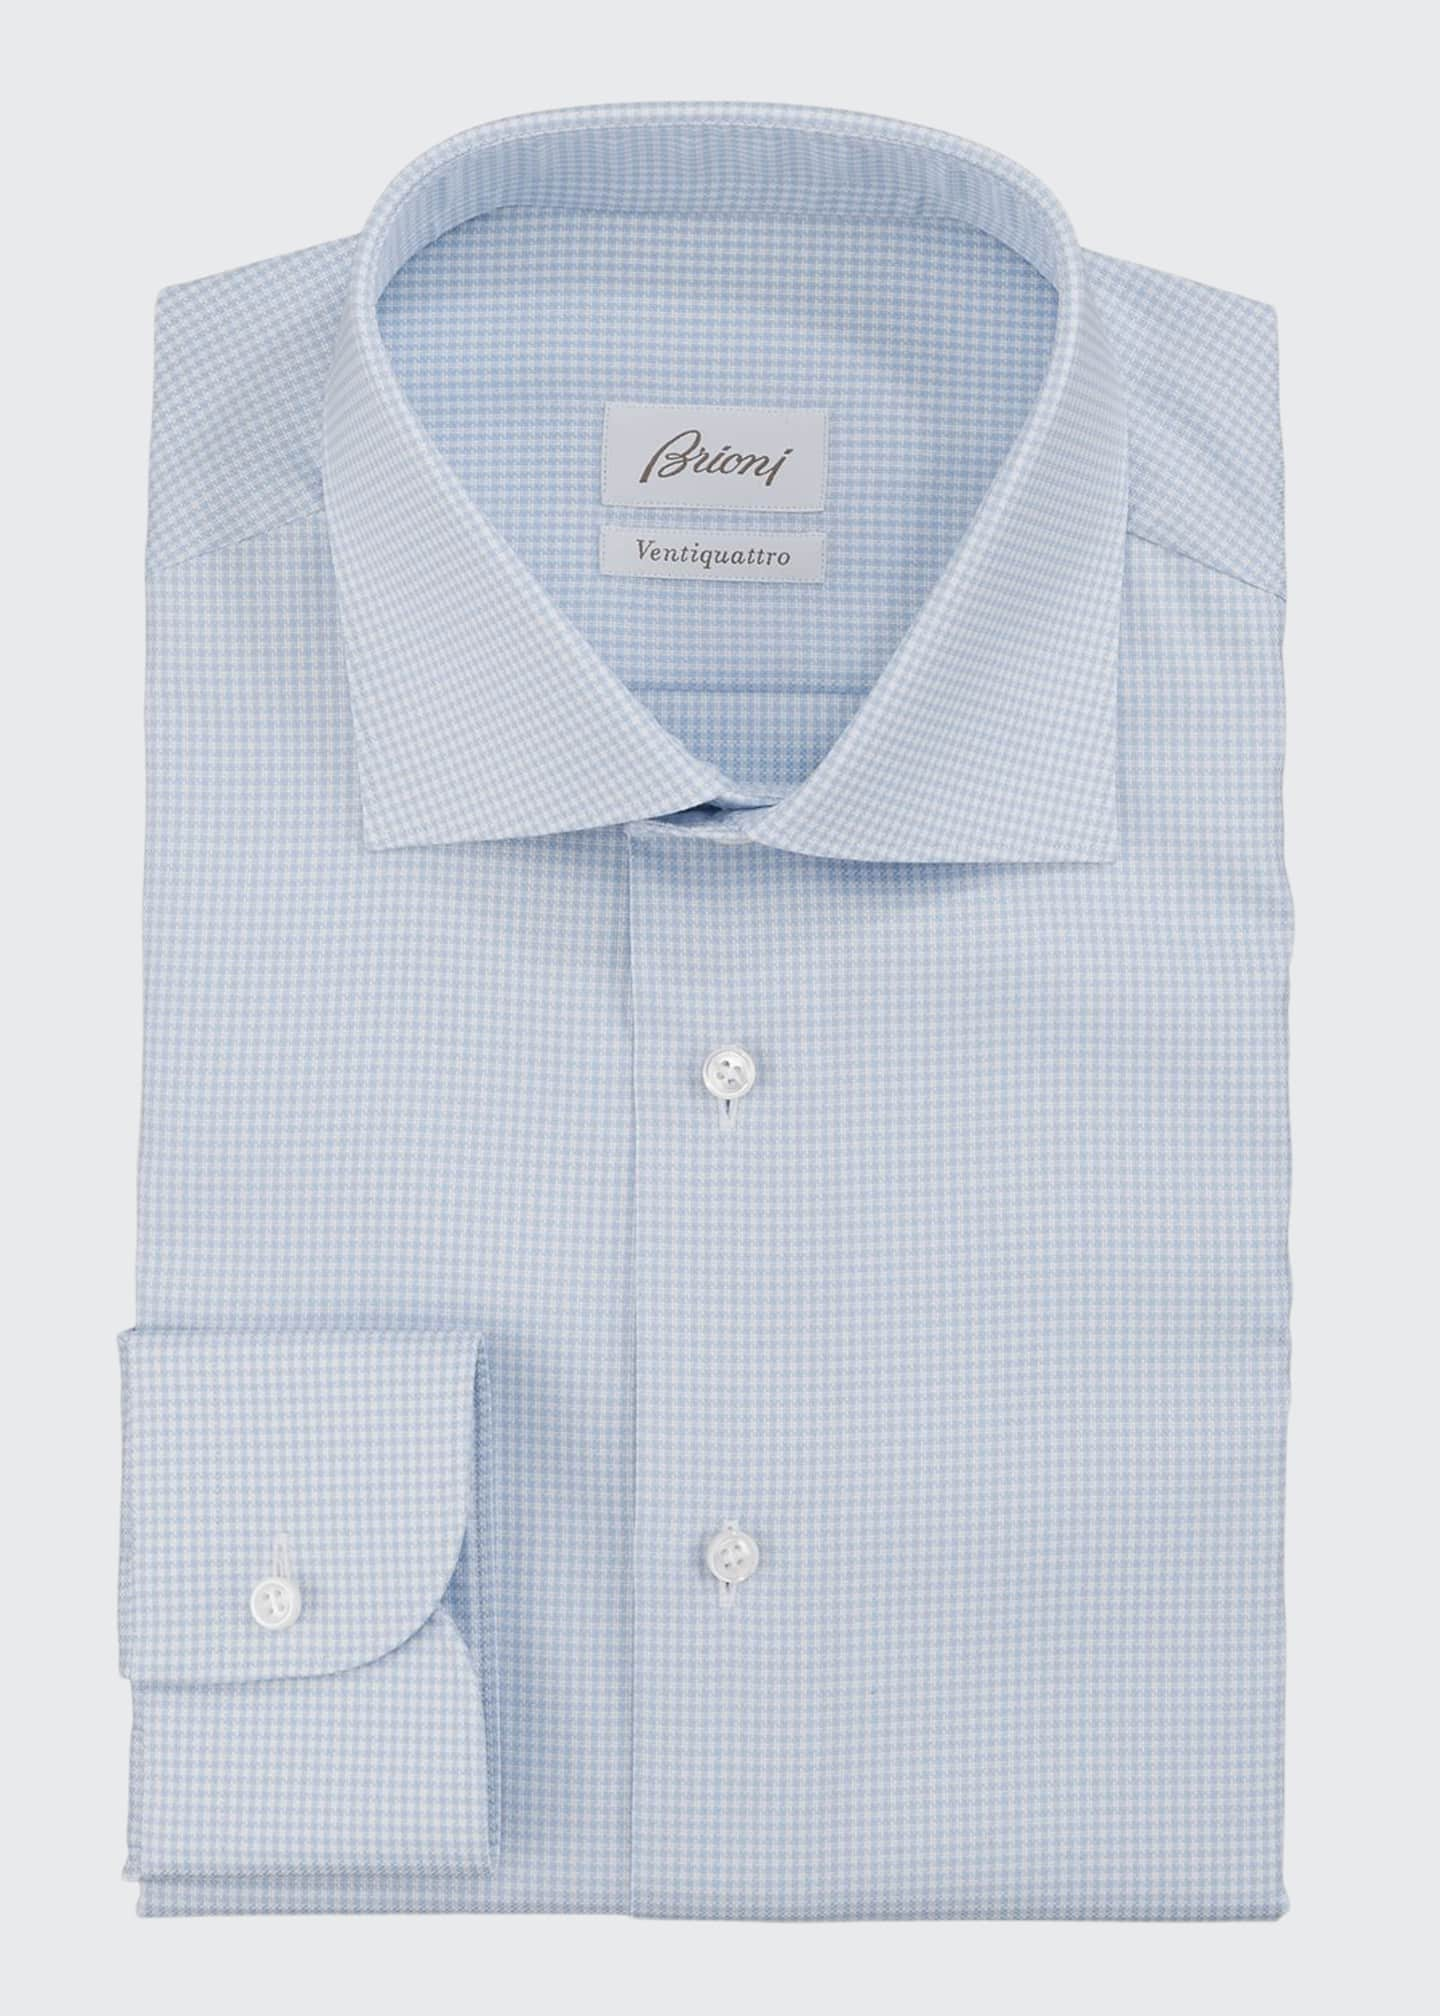 Brioni Men's Ventiquattro Check Dress Shirt